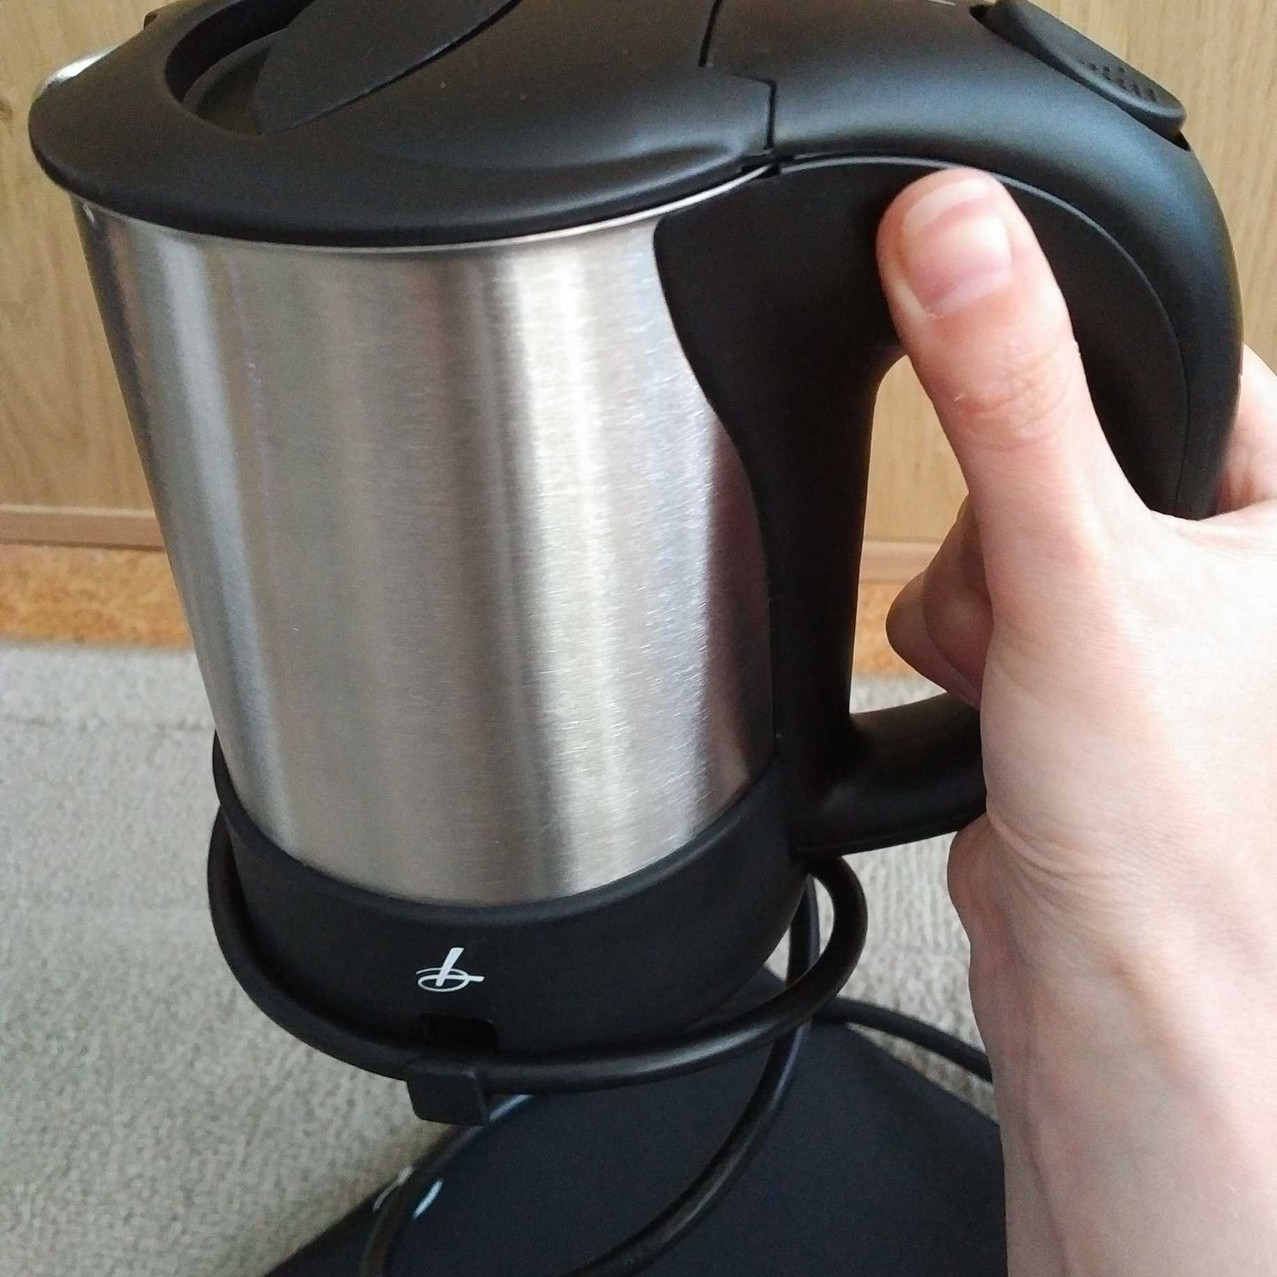 Best travel kettle - Lakeland in the hand